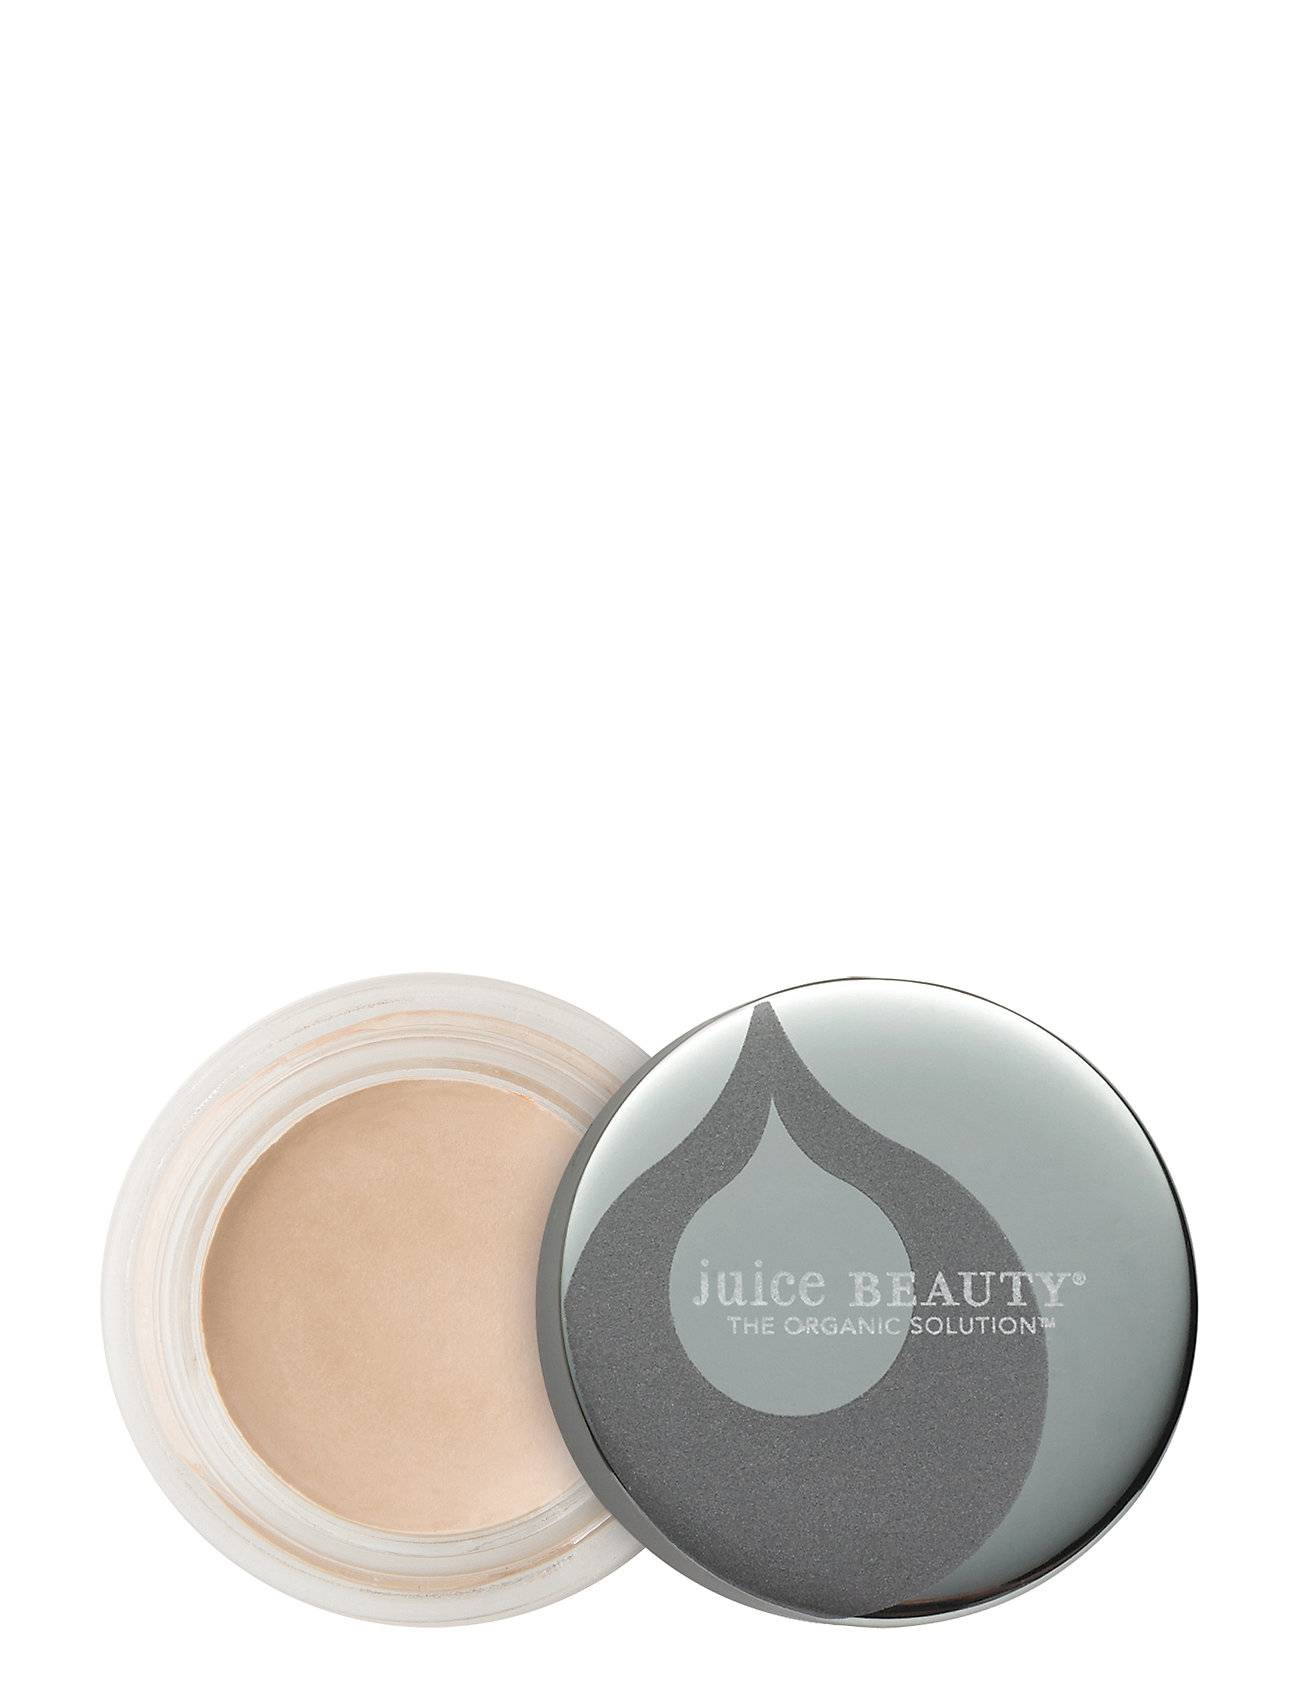 Juice Beauty Perfecting Concealer - 05 Buff